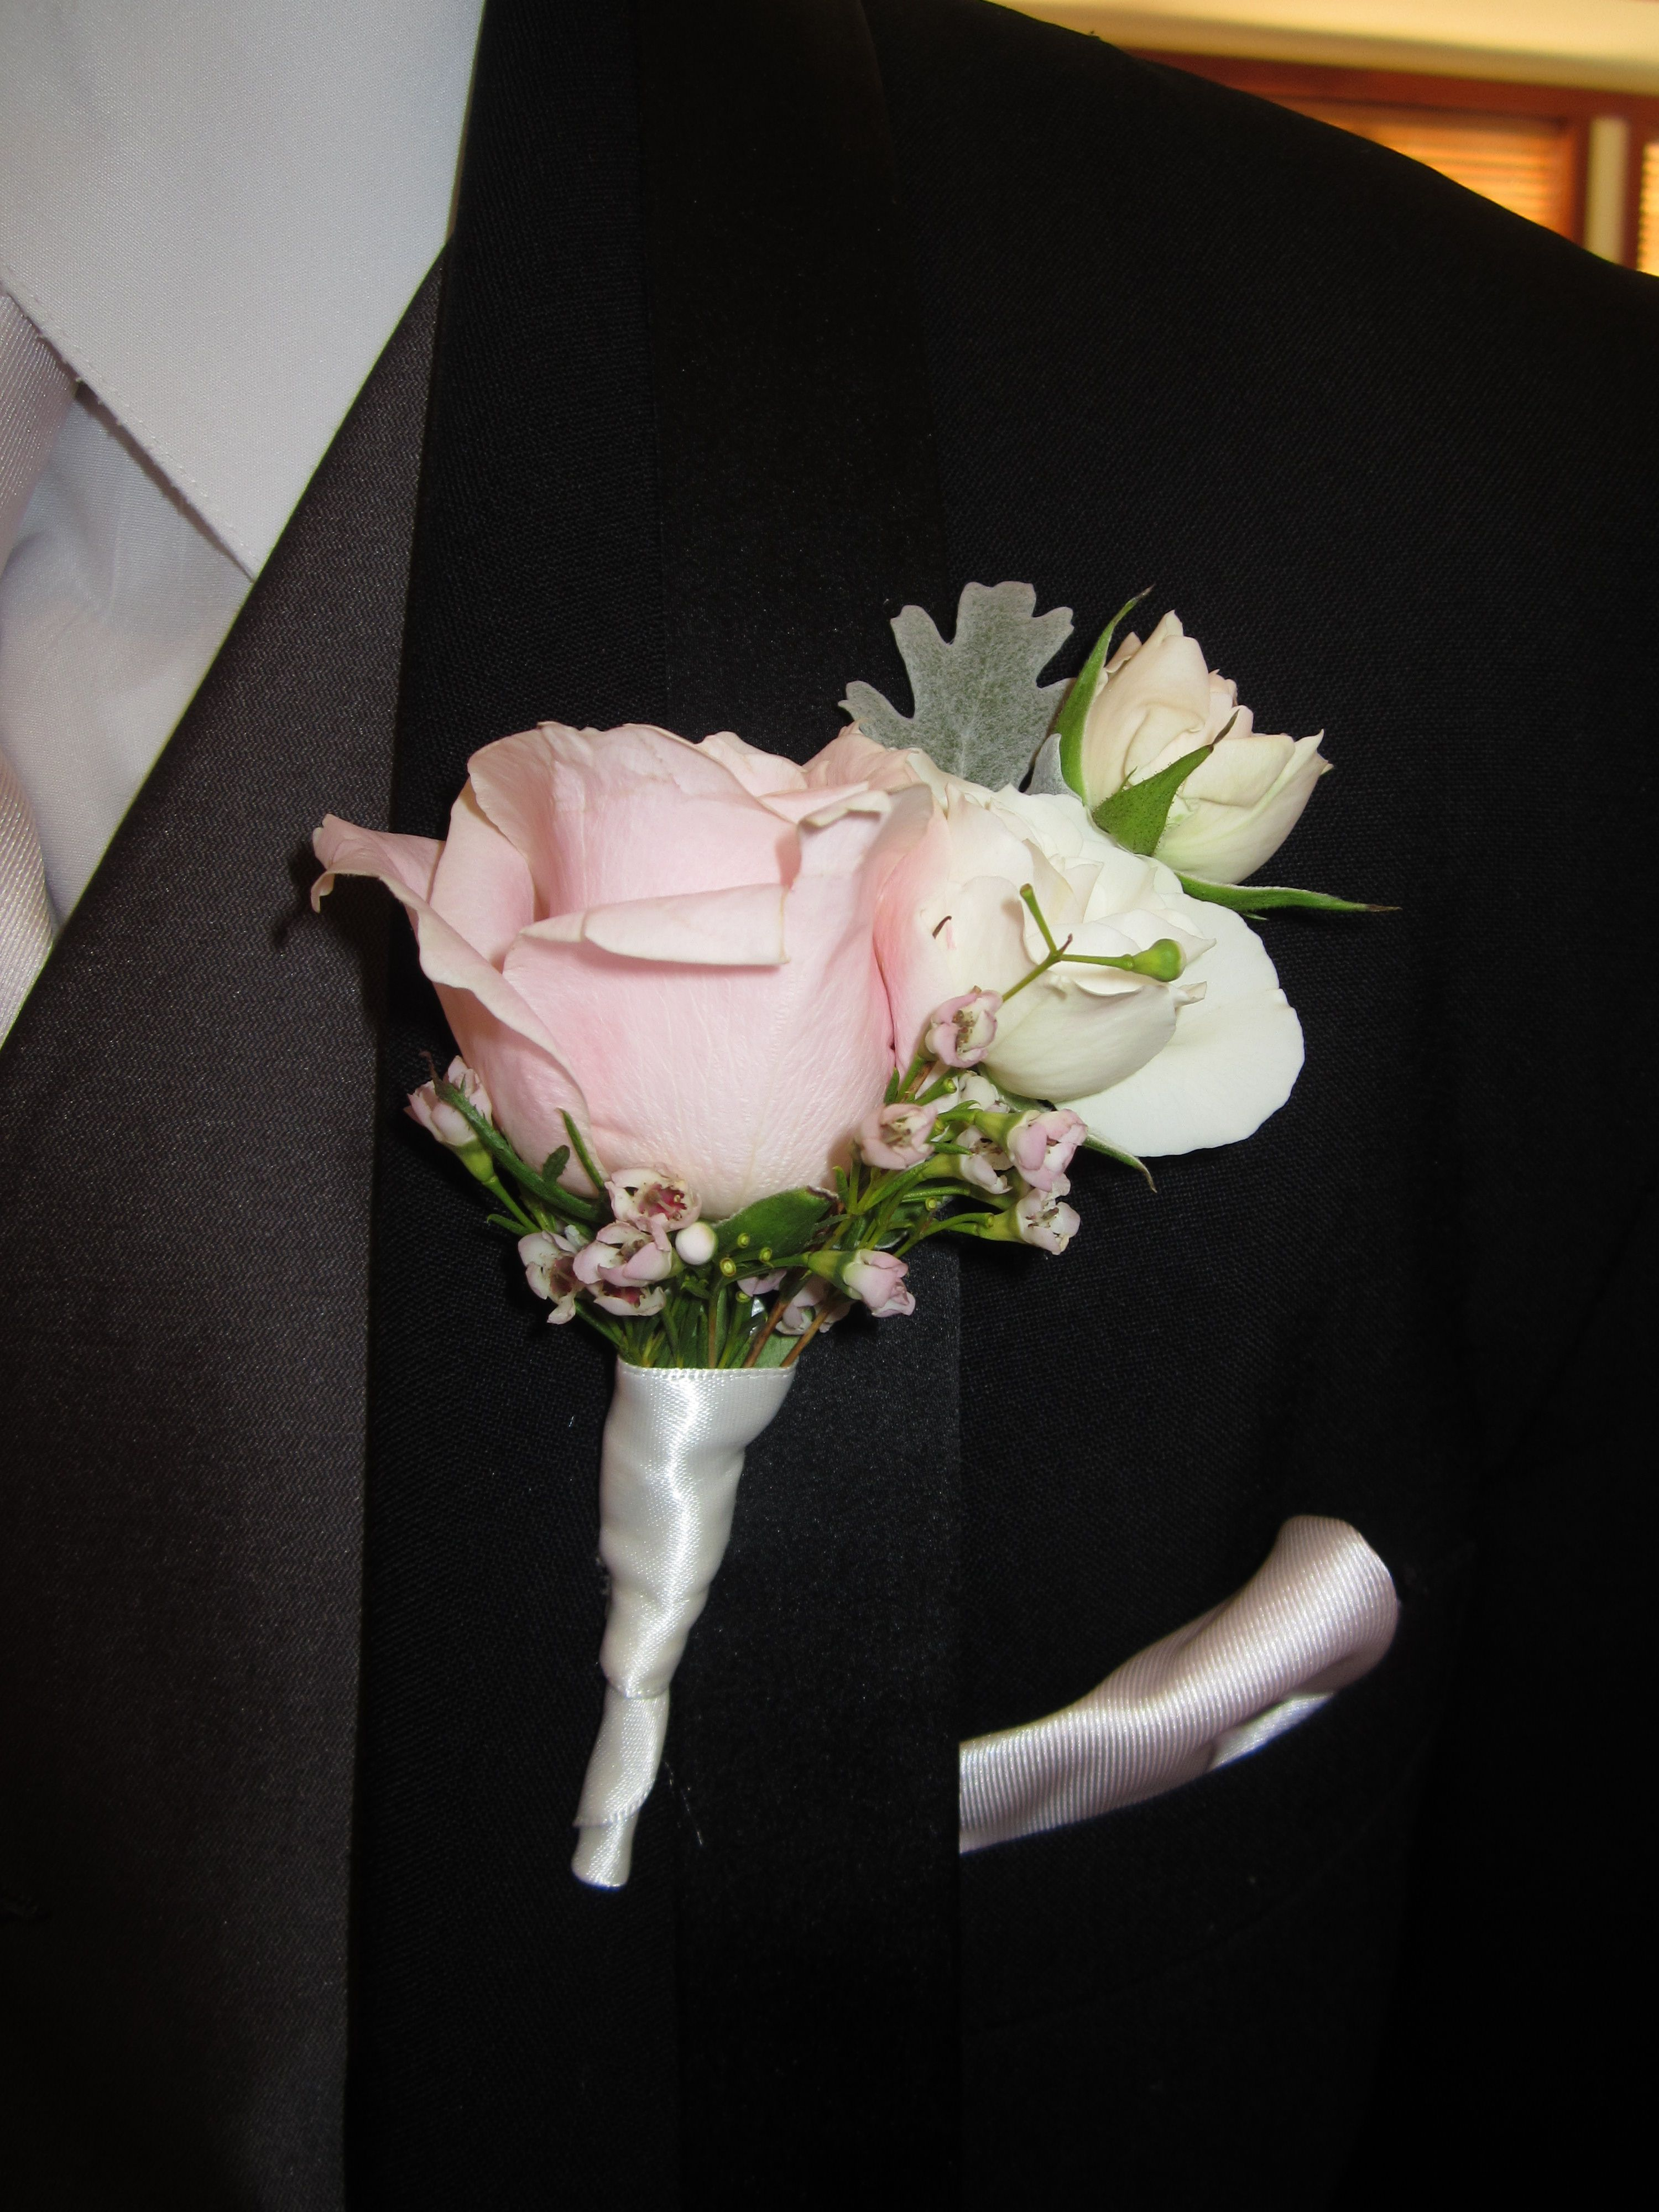 Boutonniere In Pink Sweet Avalanche Rose, And White Majolika Rose With Wax  Flower And Dusty